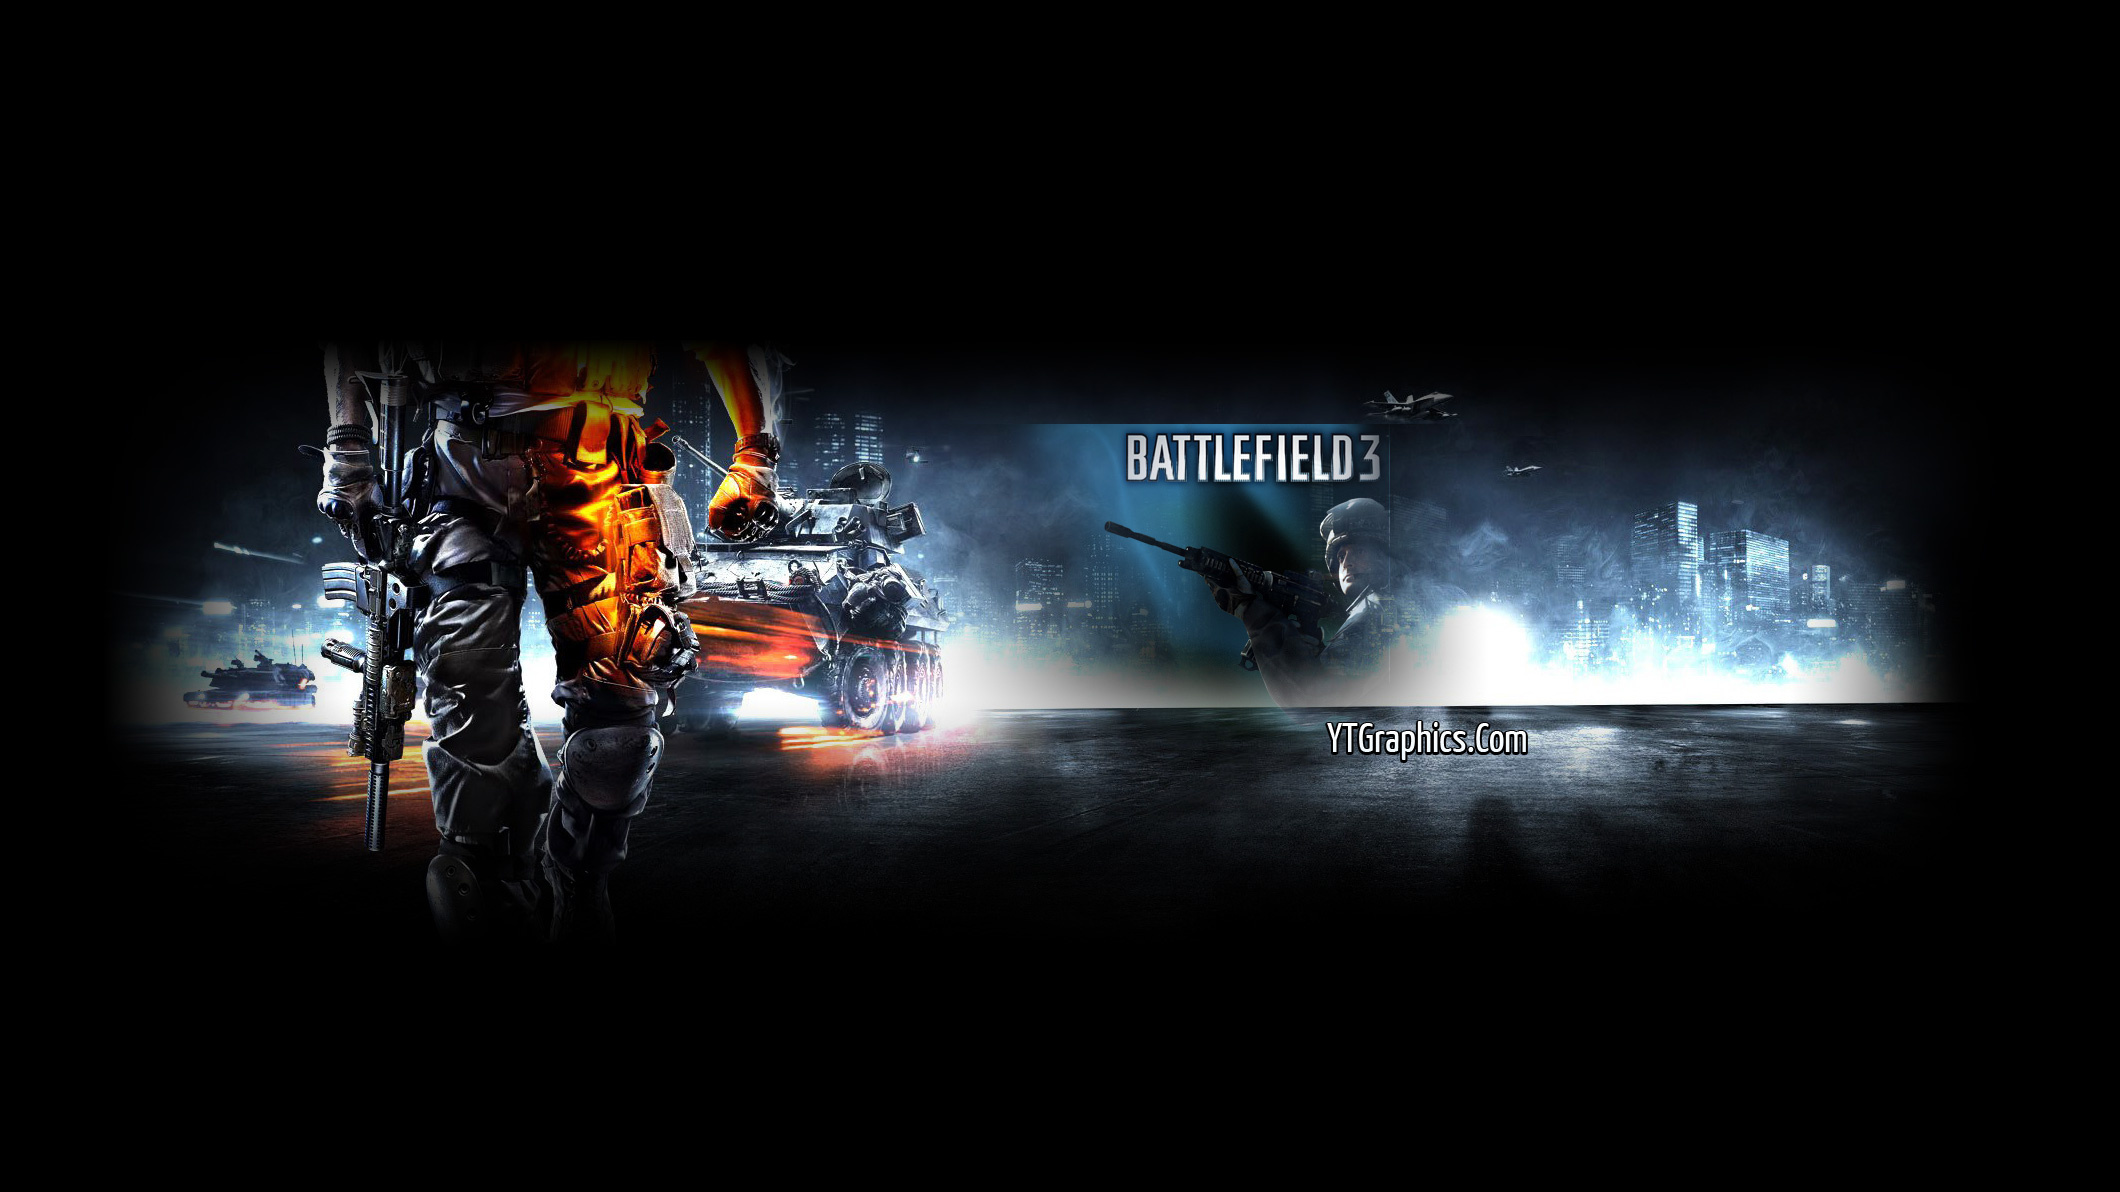 Battlefield 3 Channel Art Banner Youtube Channel Art Banners